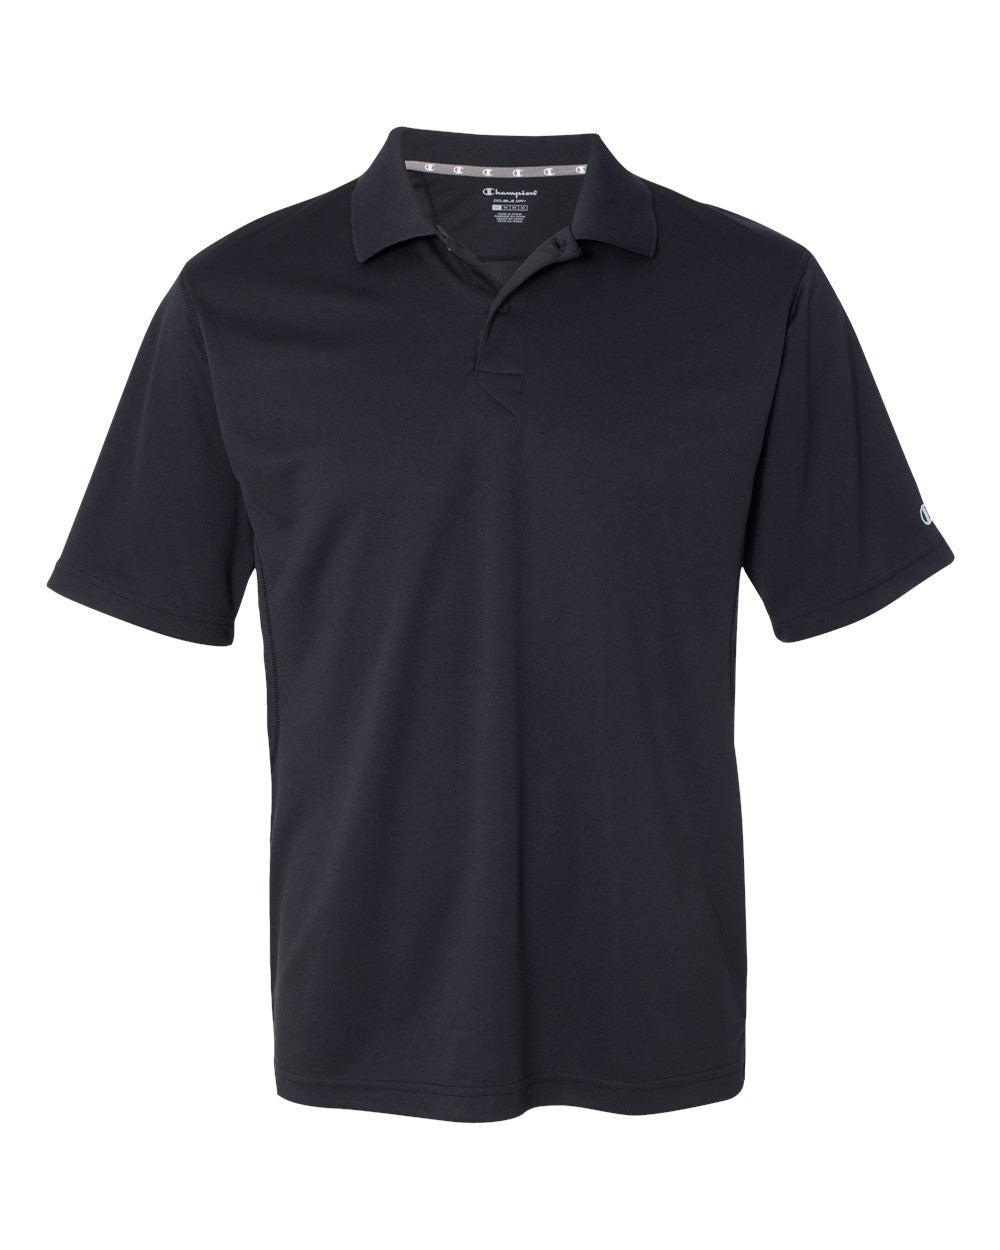 Performance Polo for Women by Champion - Discountedrack.com